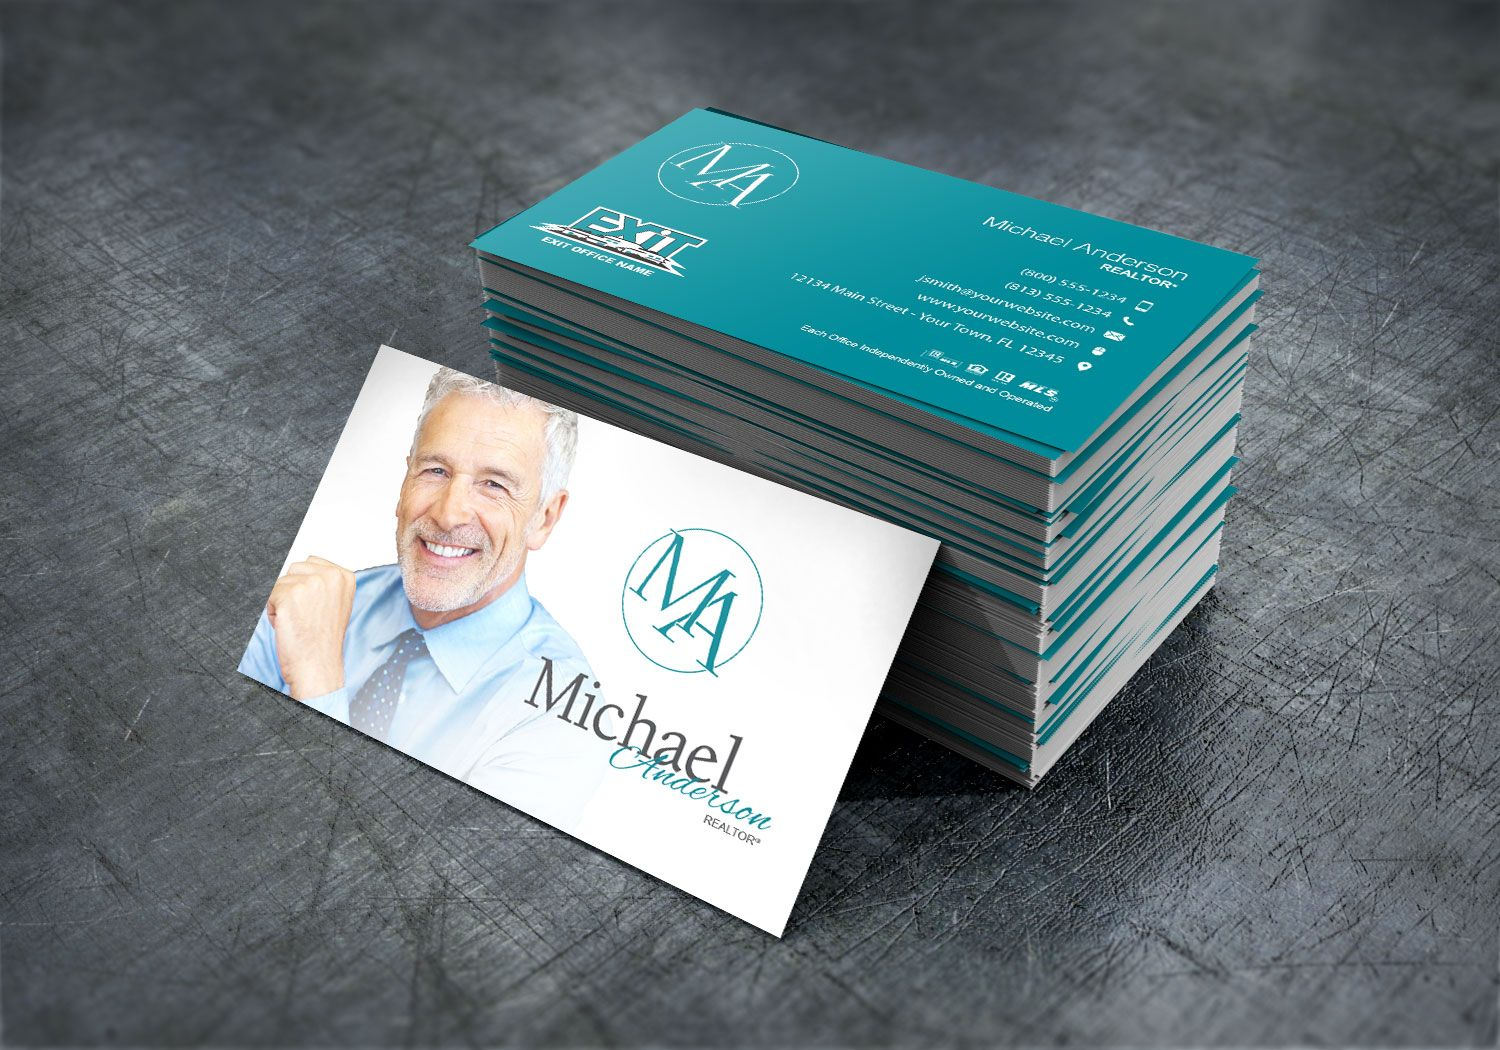 Modern And Professional Exit Realty Business Card Design For Realtors Real Estate Agent Business Cards Realtor Business Cards Keller Williams Business Cards